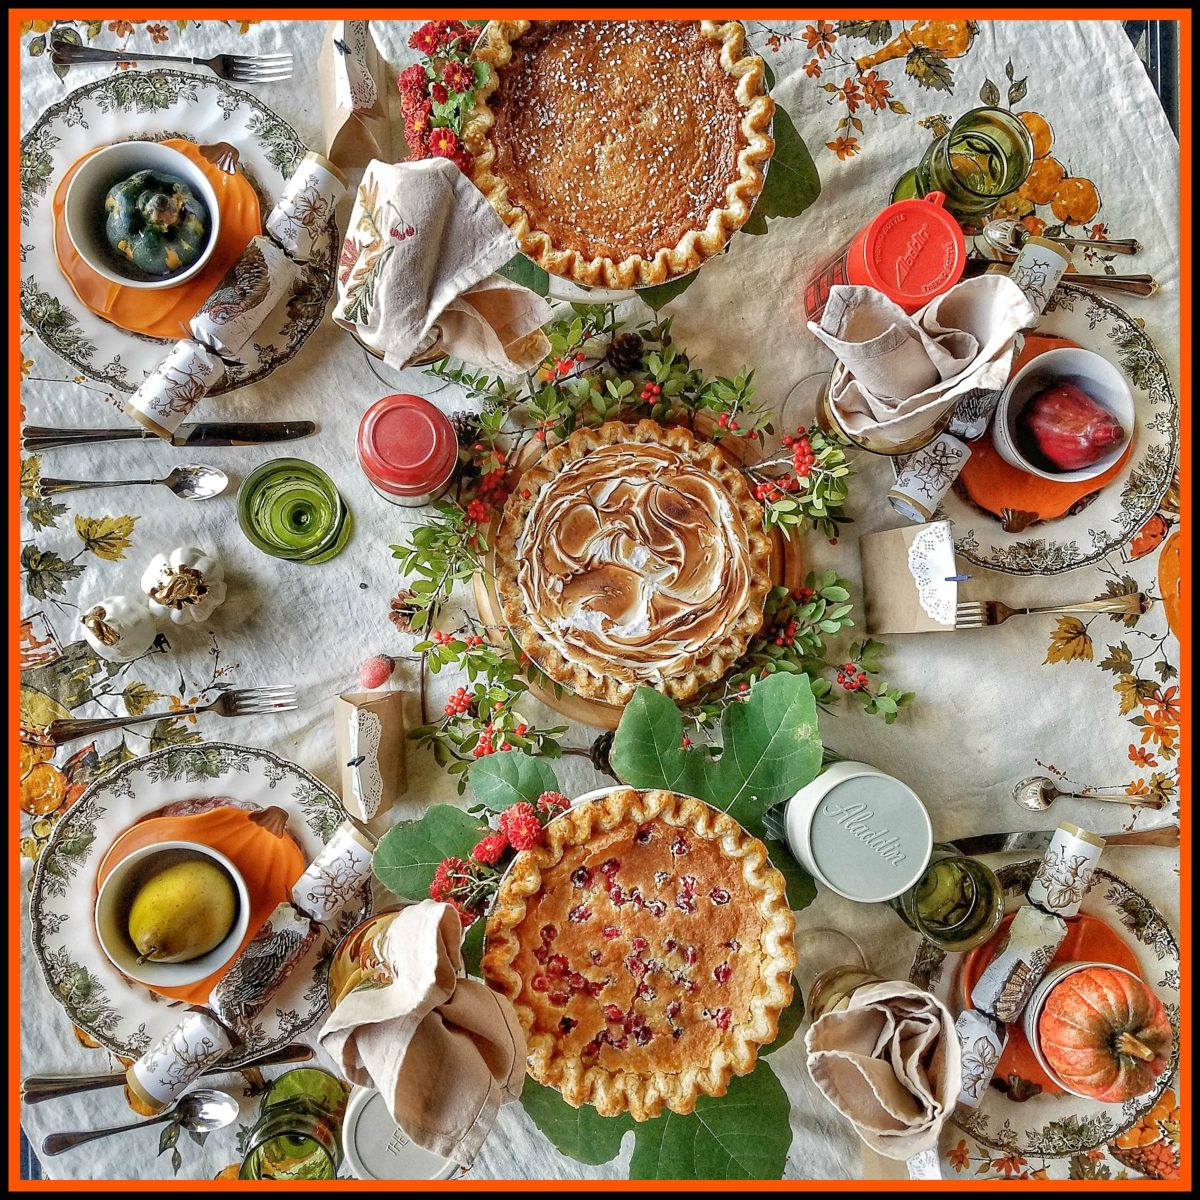 Mrs. Twist's Guide to Thanksgiving:  Make Pies Your Centerpiece!